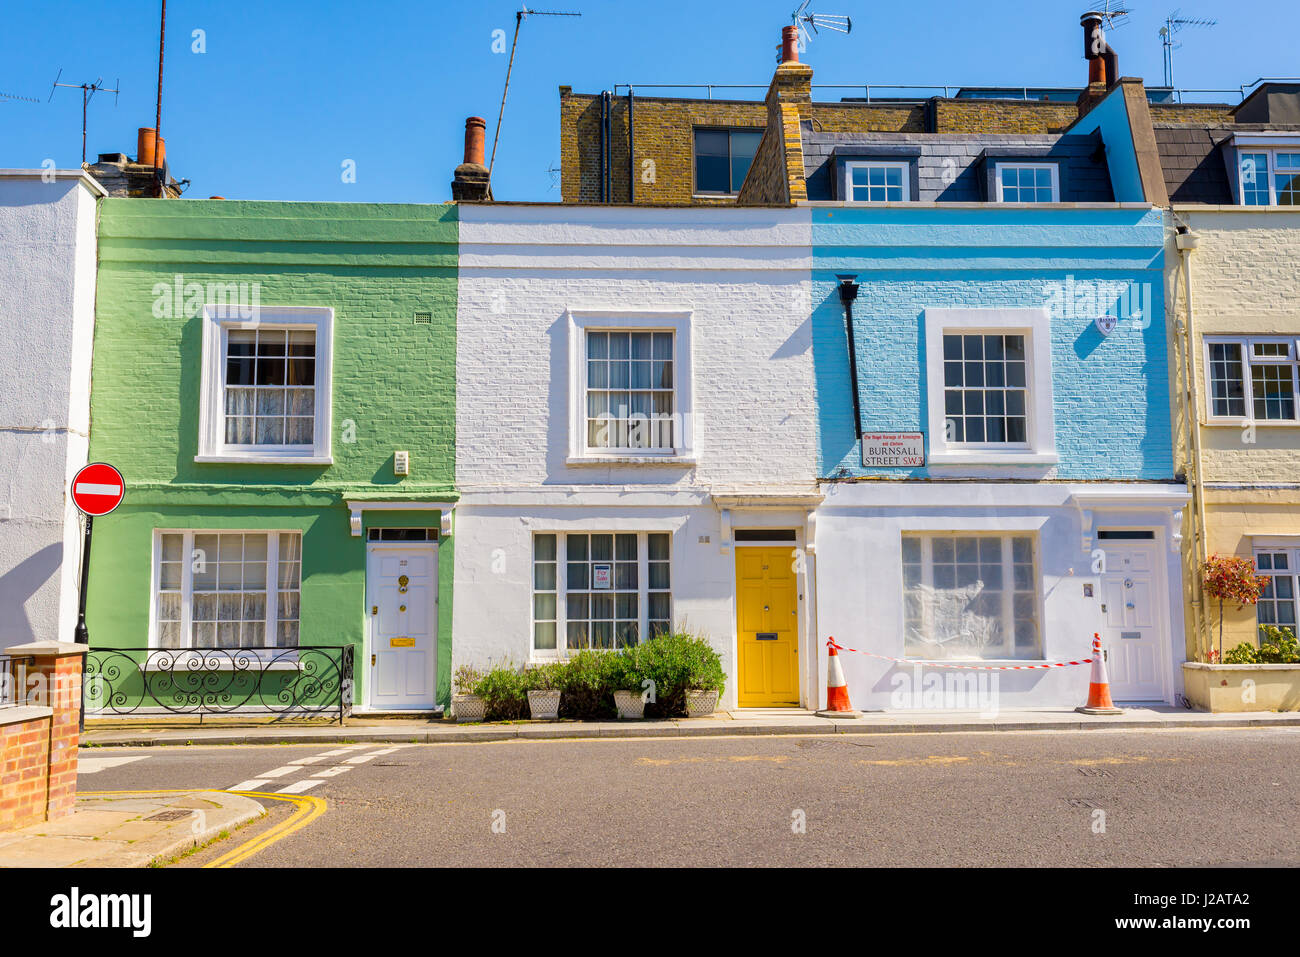 Pastel colored restored Victorian British houses in Burnsall street, Royal Borough of Kensington and Chelsea, London, - Stock Image